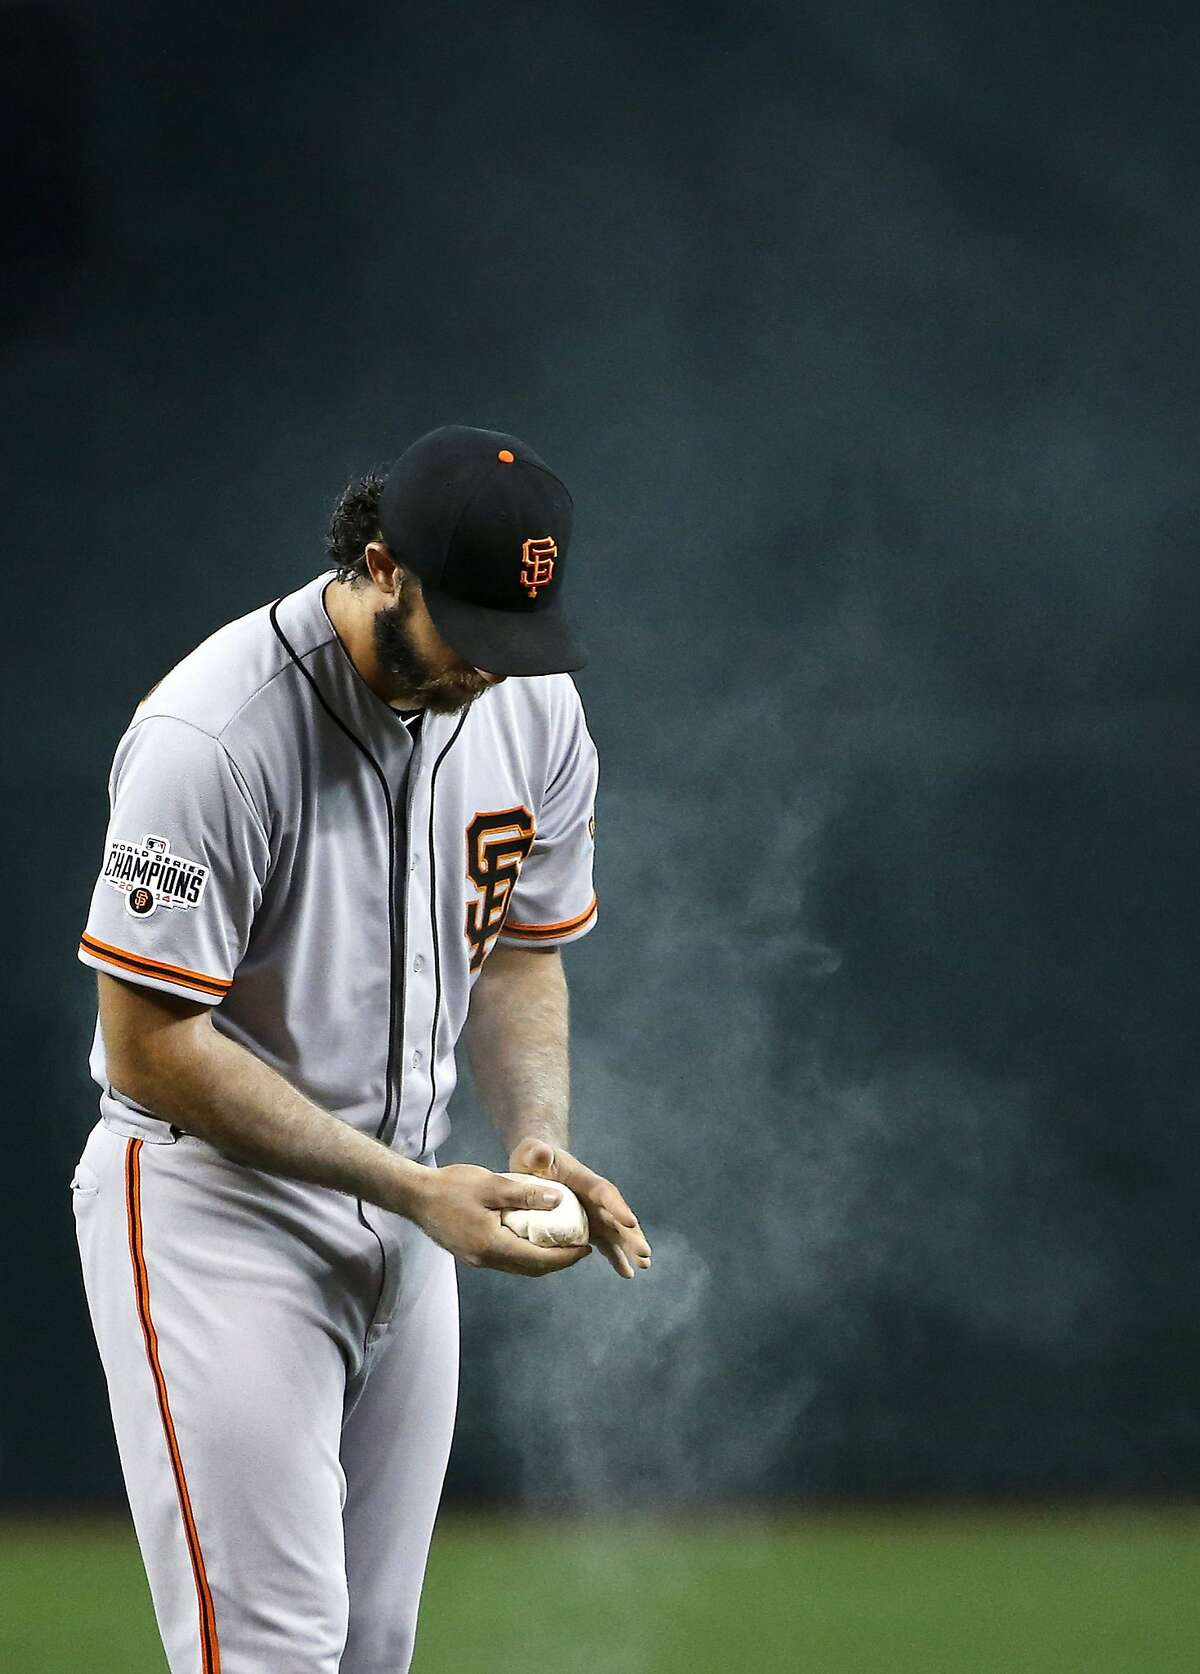 Madison Bumgarner applies rosin to his hand and arm during a game against the Arizona Diamondbacks in July 2015.